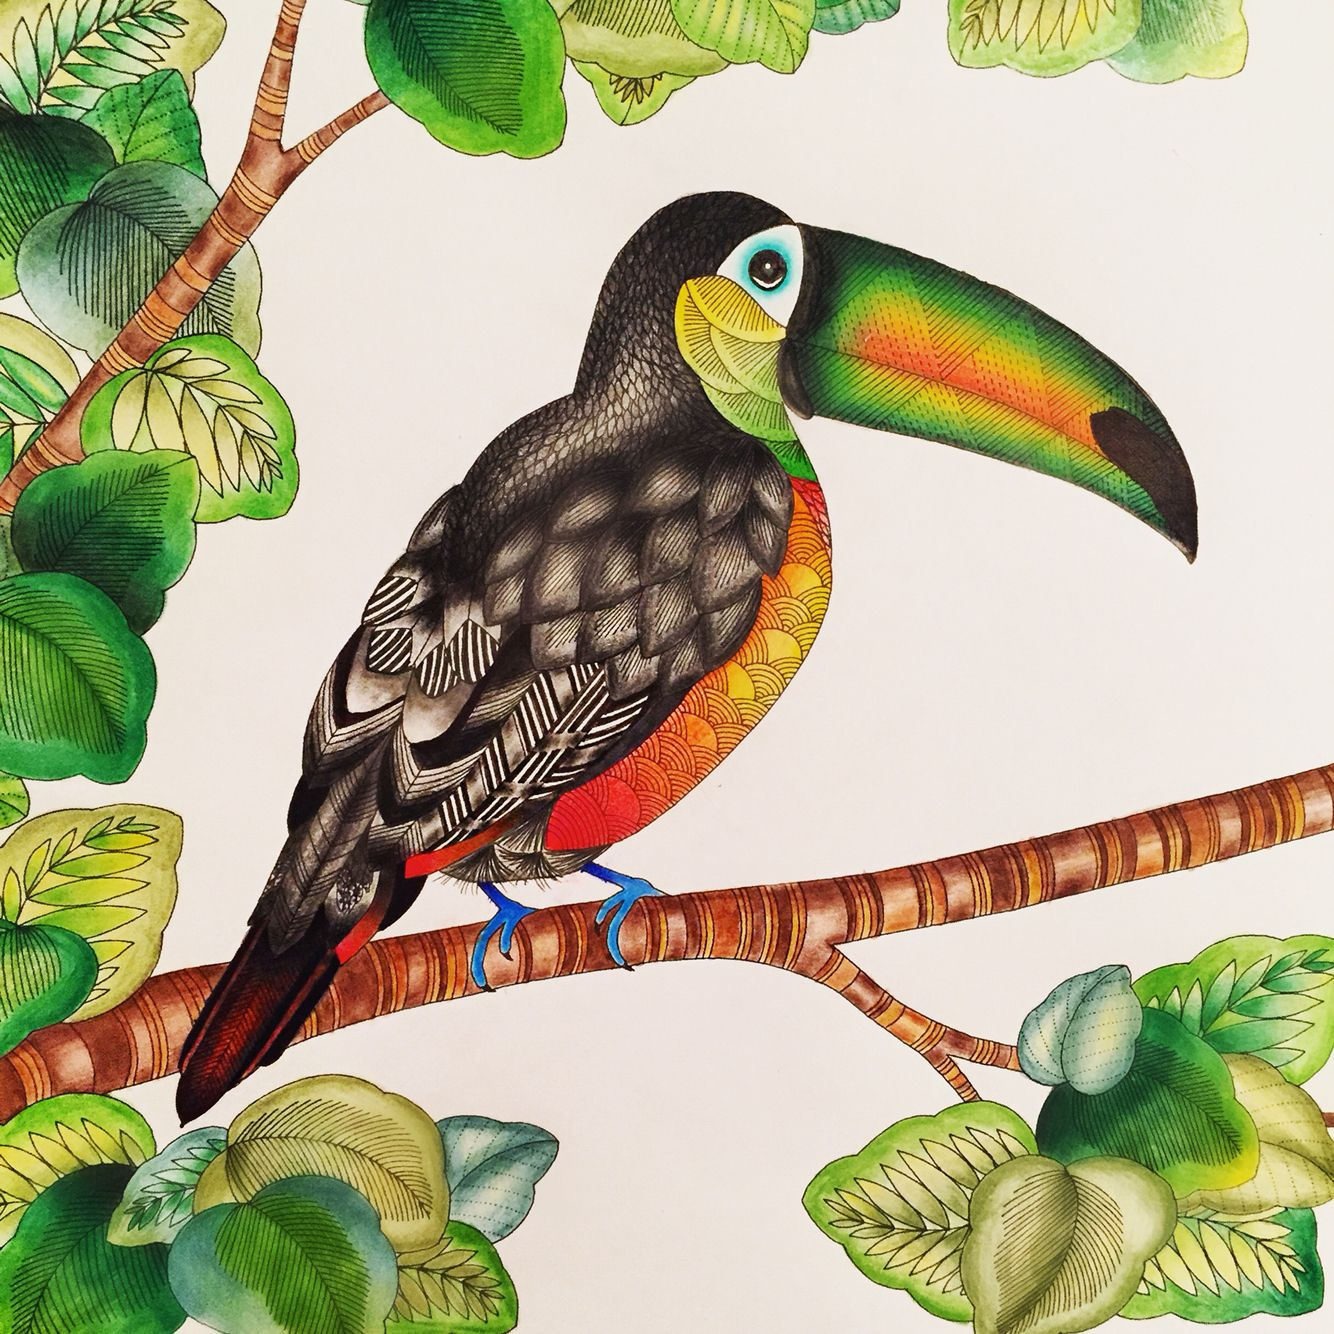 Toucan From The Millie Marotta Animal Kingdom Colouring Book Instagram Millie Marotta Animal Kingdom Animal Kingdom Colouring Book Millie Marotta Coloring Book